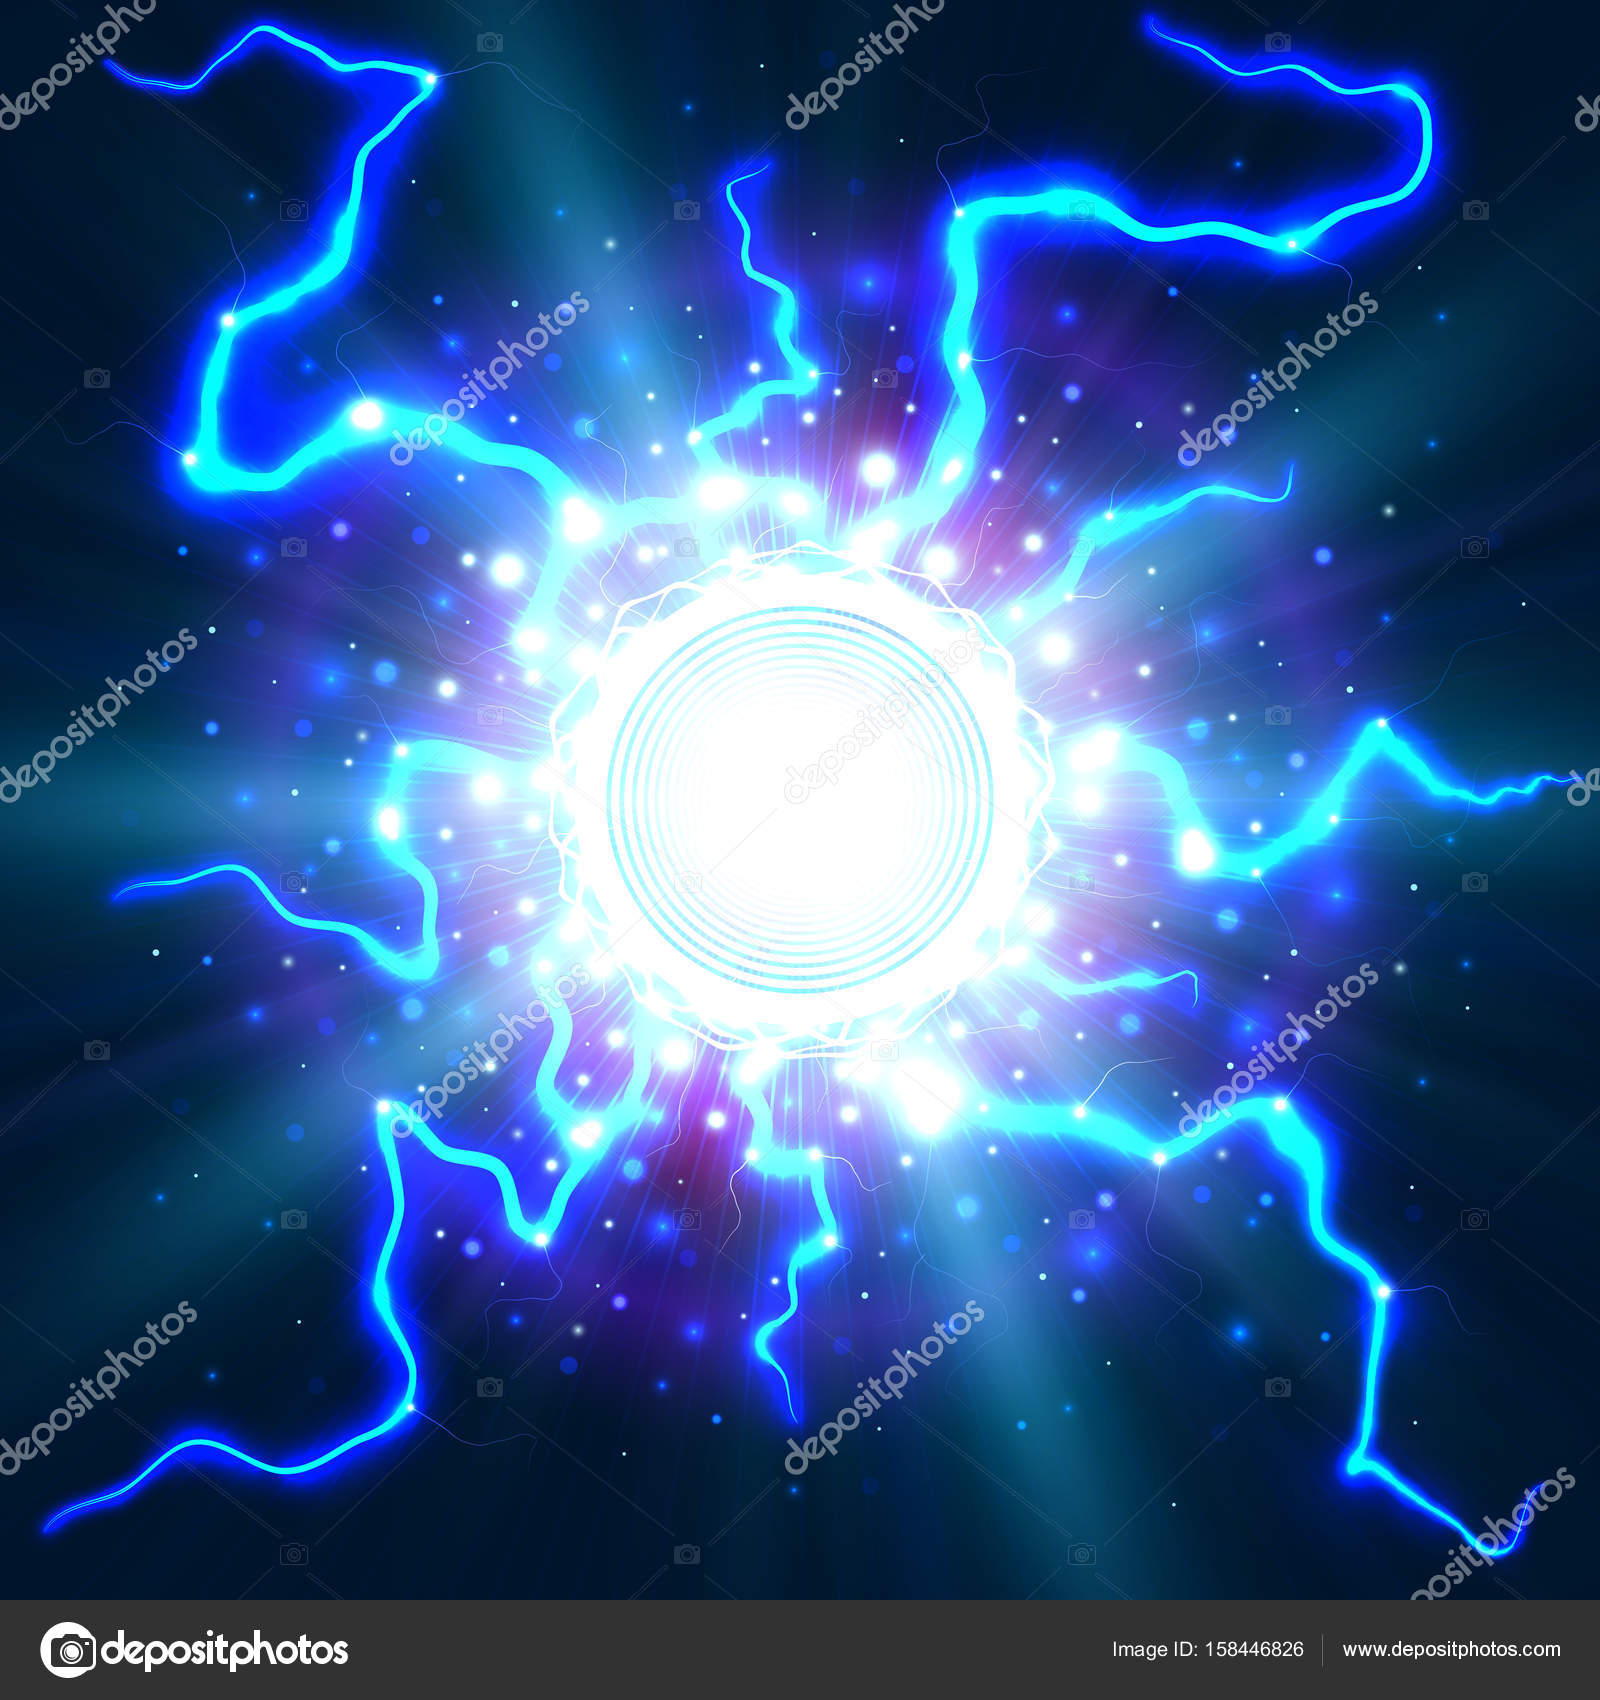 The Day After [Hawkman] Depositphotos_158446826-stock-illustration-lightning-an-explosion-of-electricity